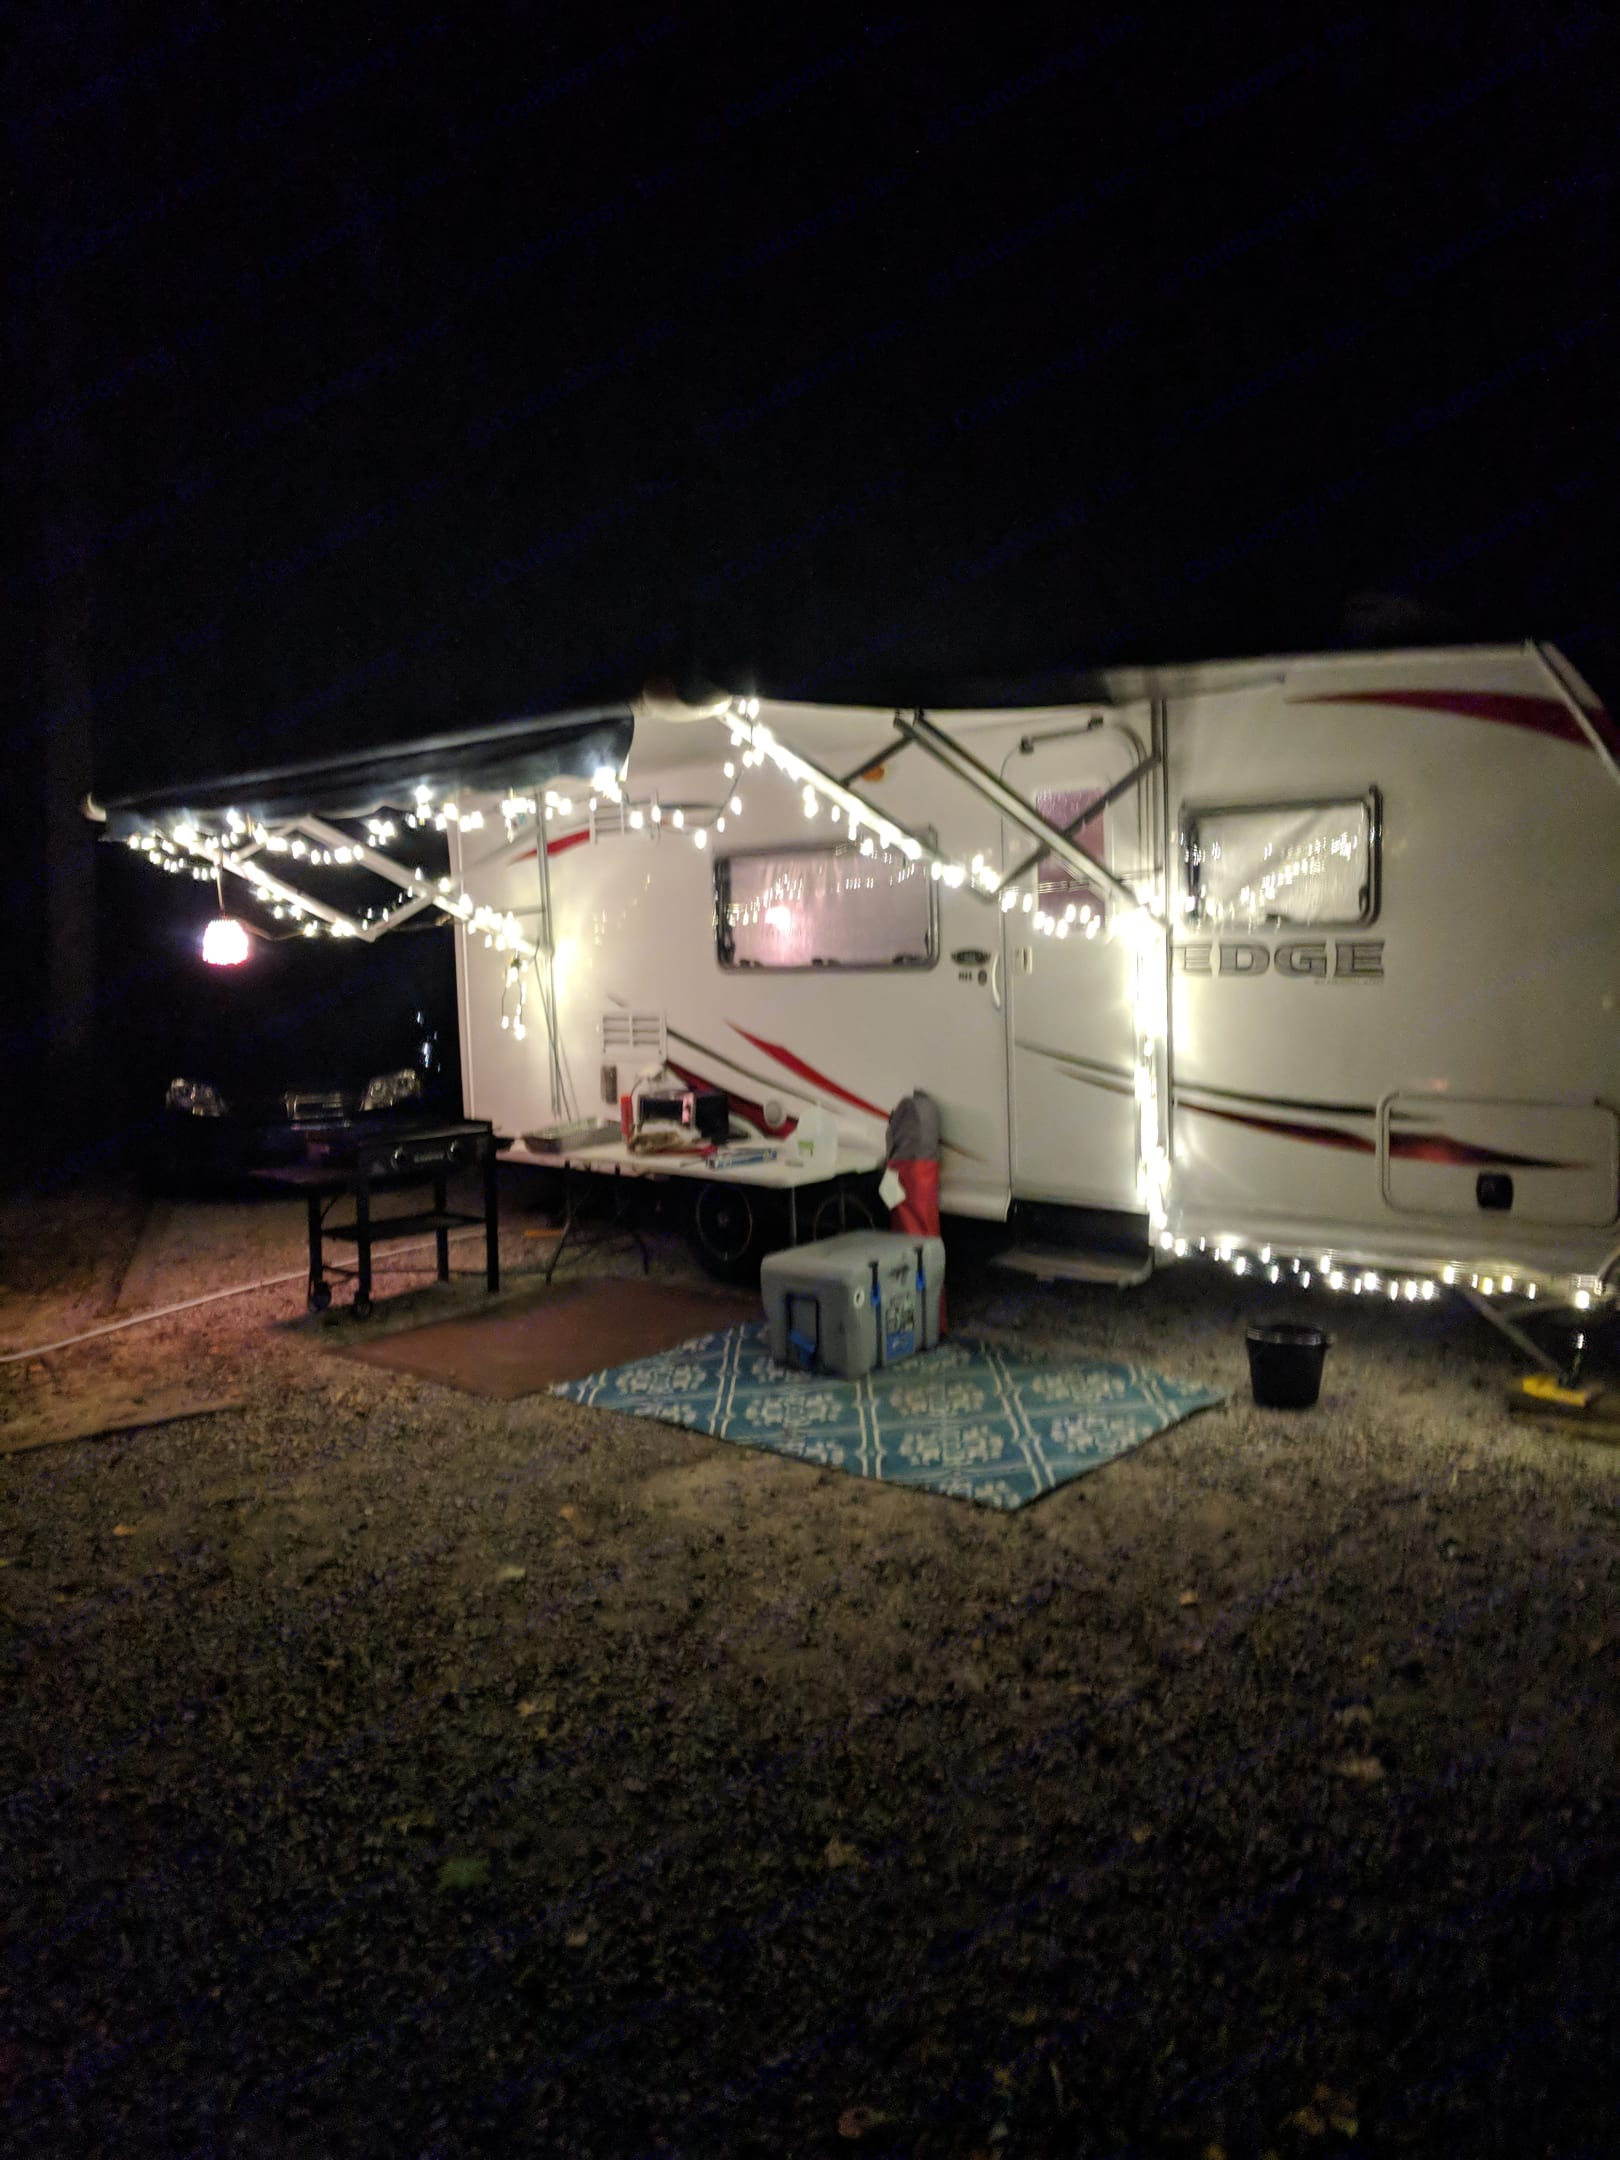 Night time at Harrison Bay State Park. Home sweet Home.. Heartland Edge 2012